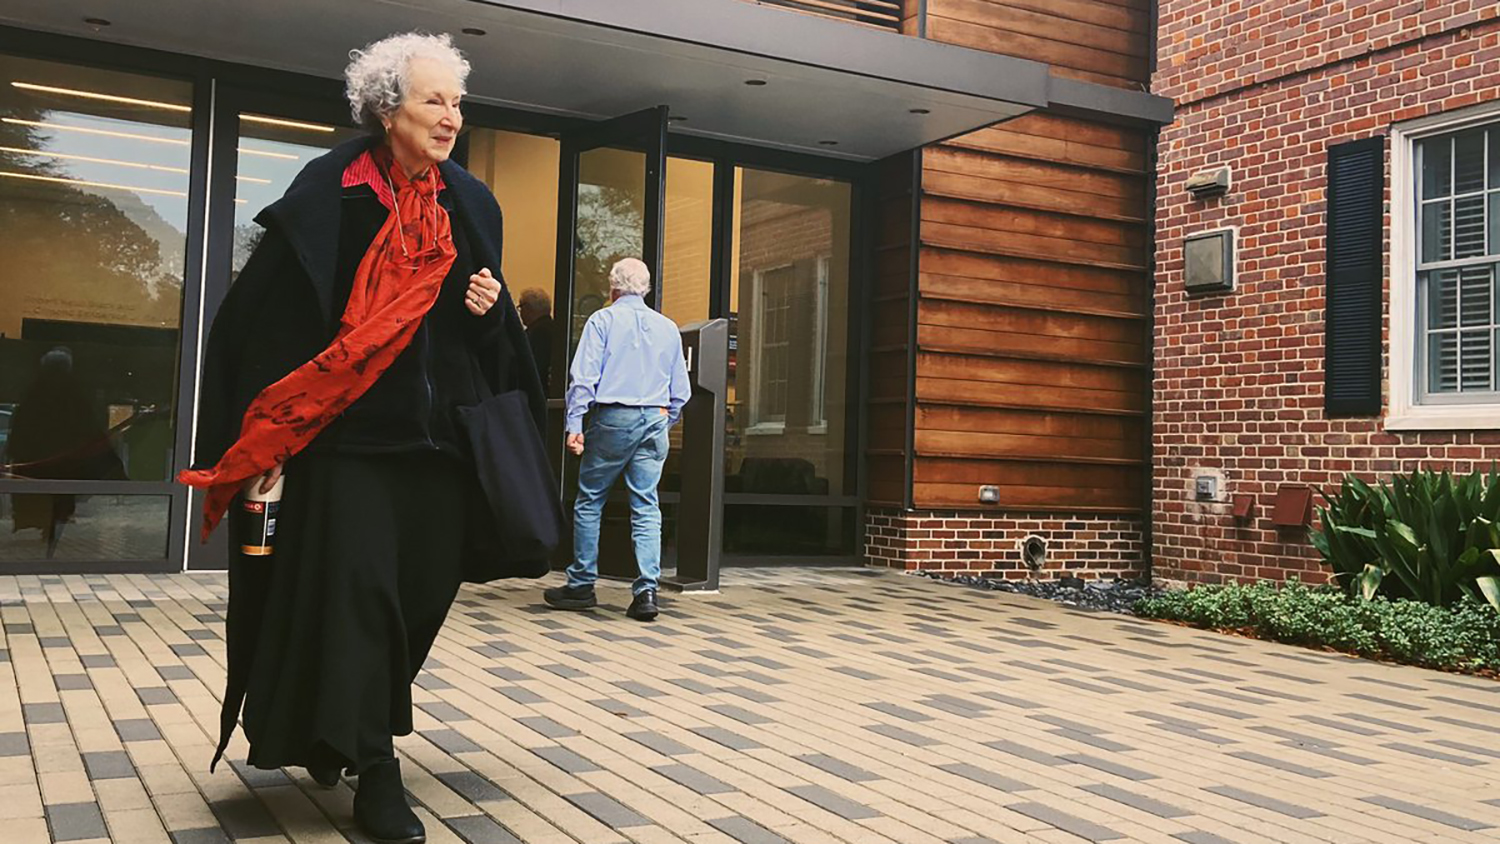 Author Margaret Atwood leaves the Gregg Museum of Art and Design after visiting an exhibit.